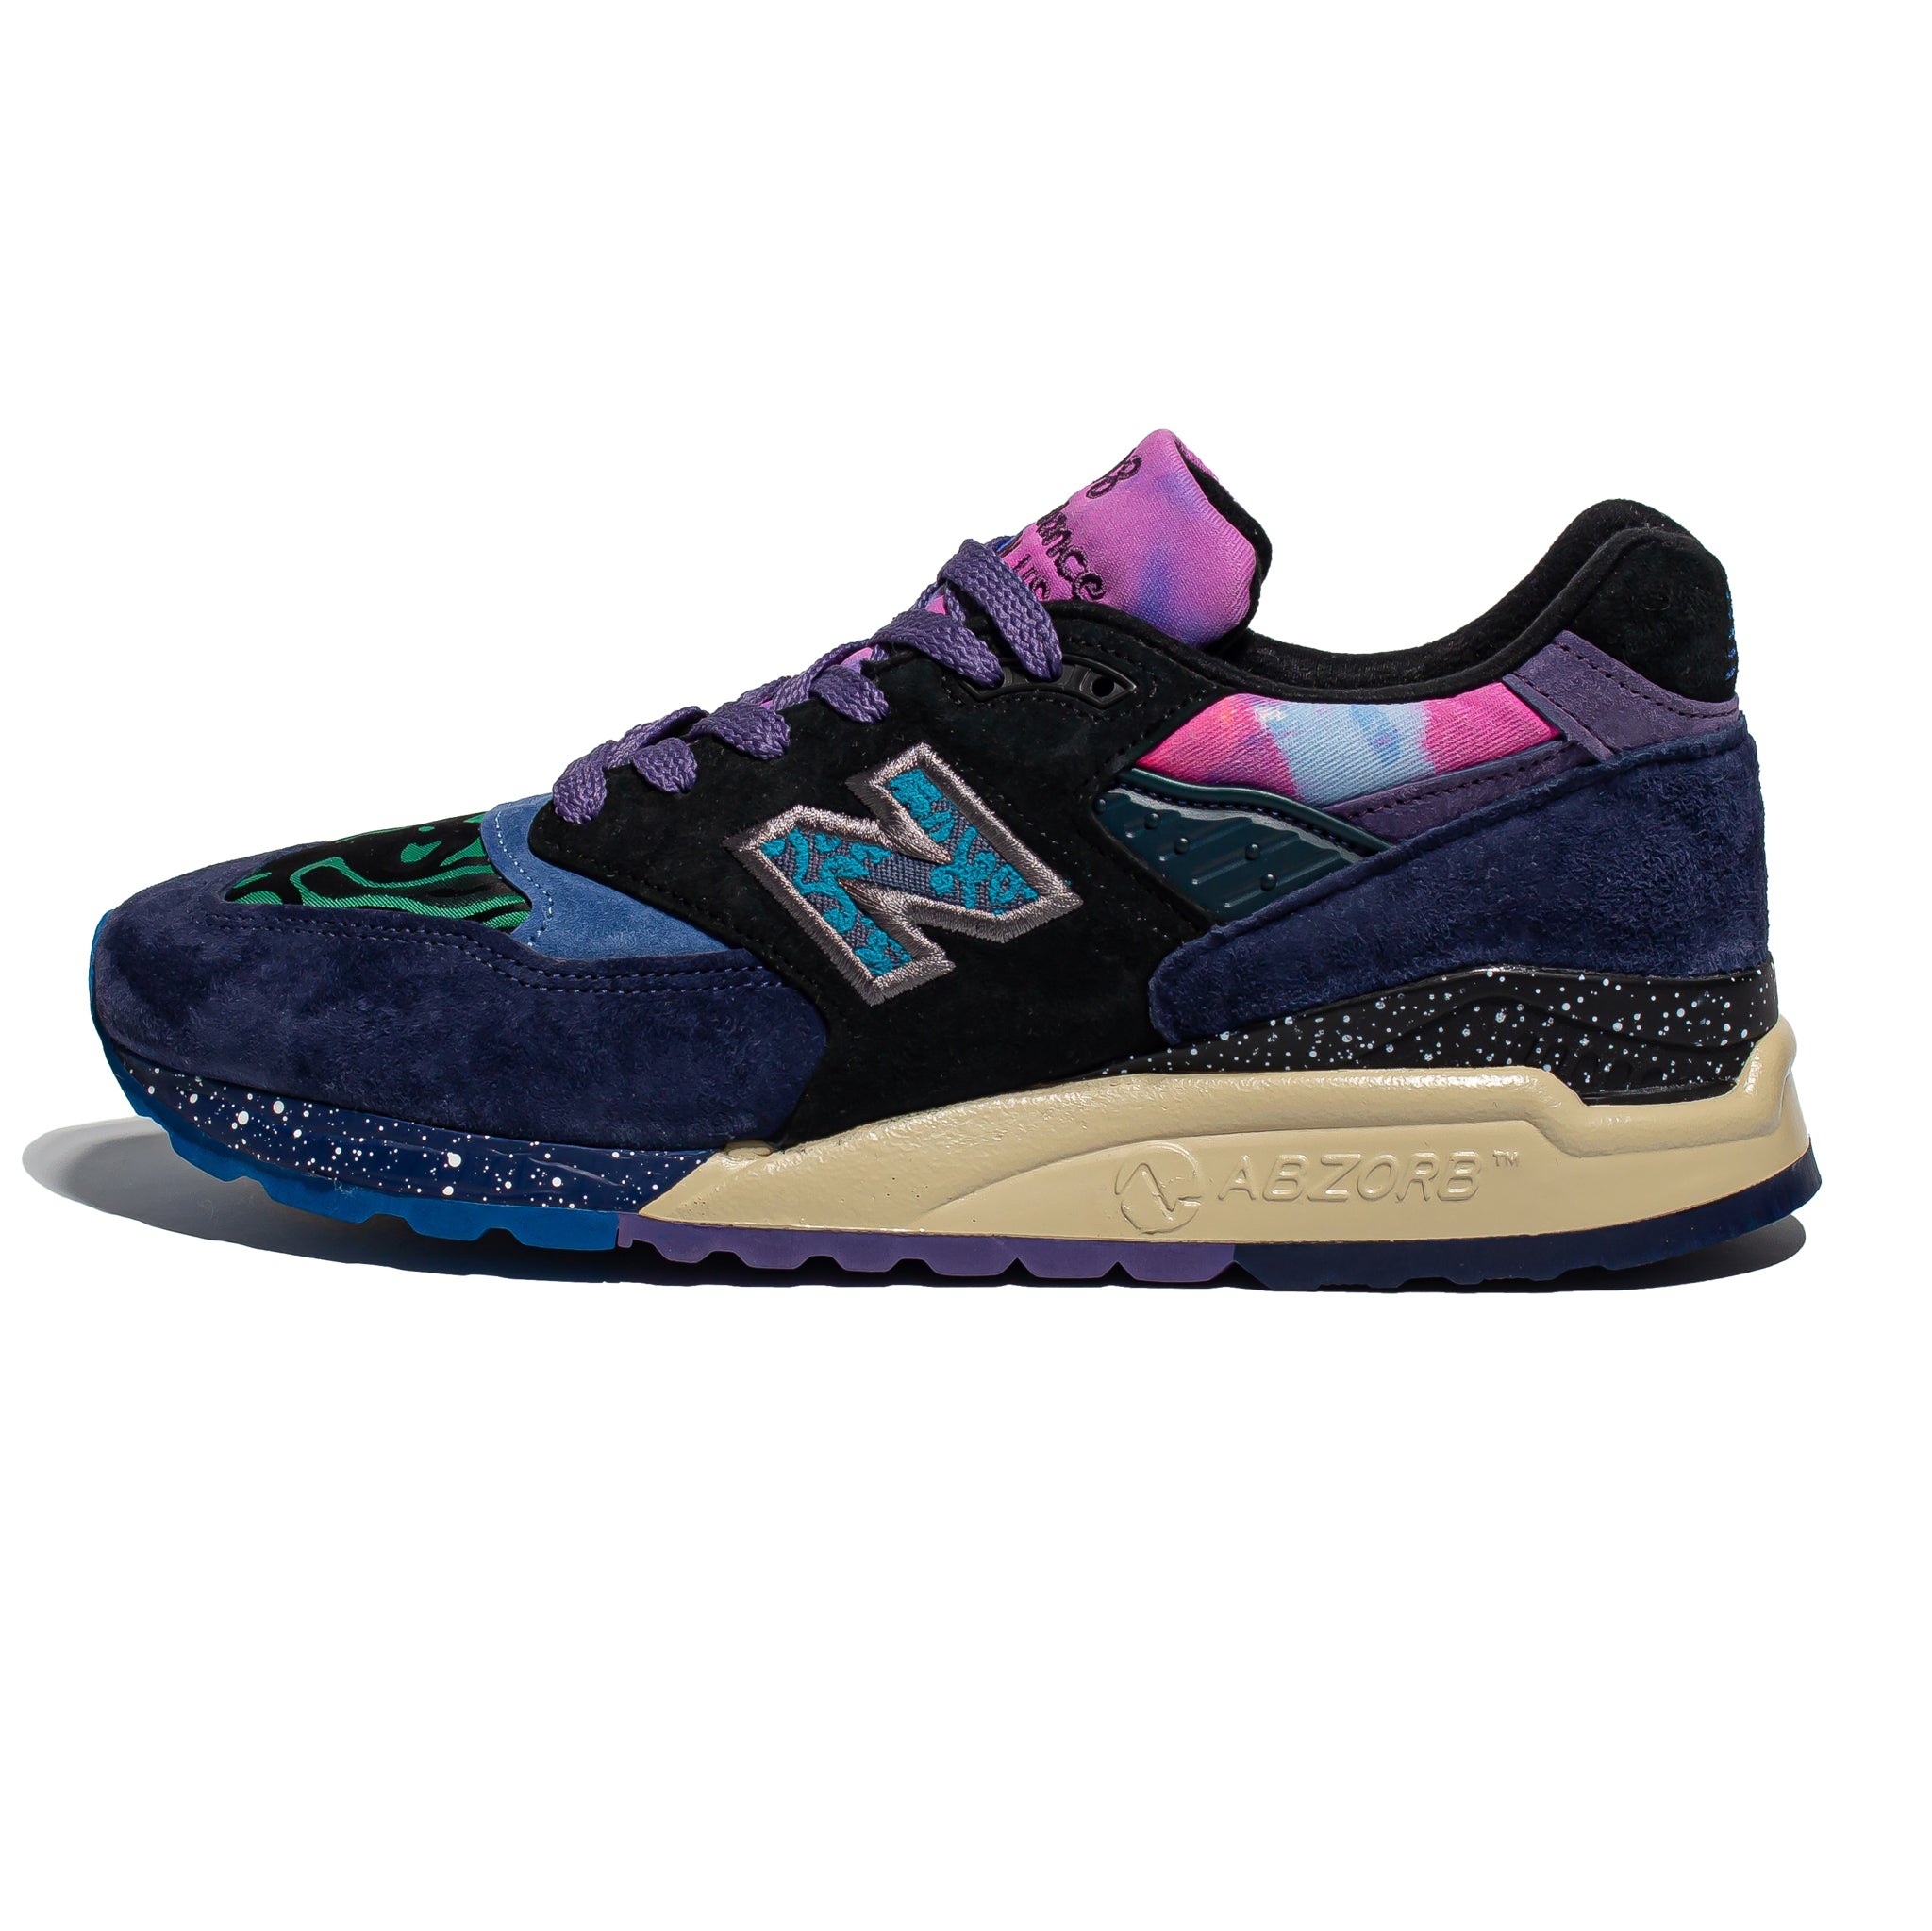 New Balance 'Made in USA' M998AWG 'Festival Pack'